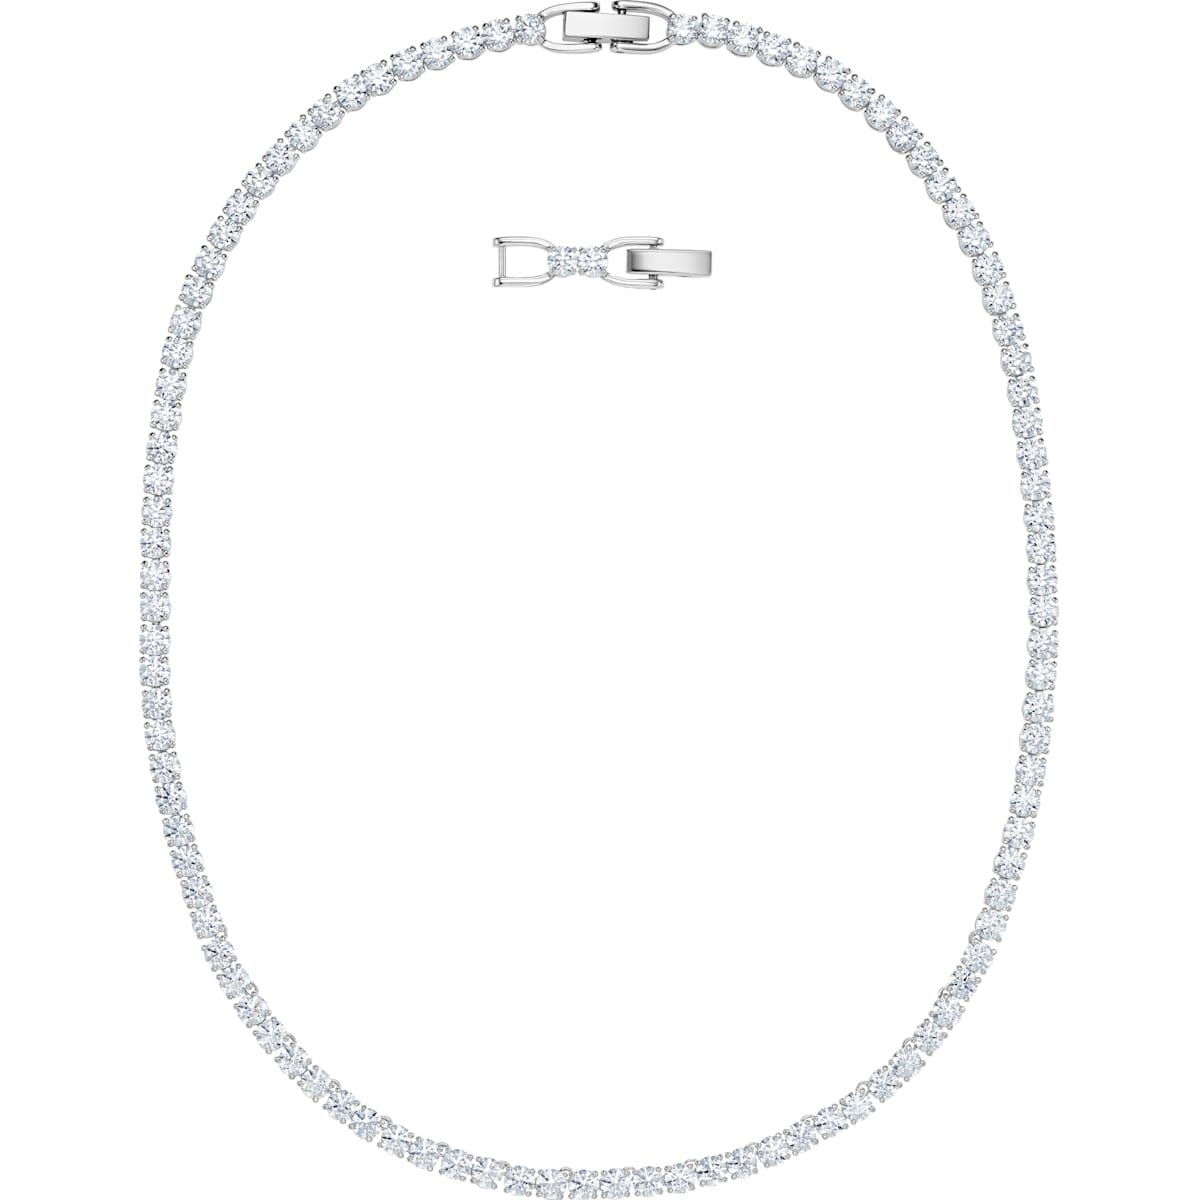 Tennis Deluxe Necklace White Rhodium Plated By Swarovski In 2020 Swarovski White Crystal Bracelet Crystal Necklace